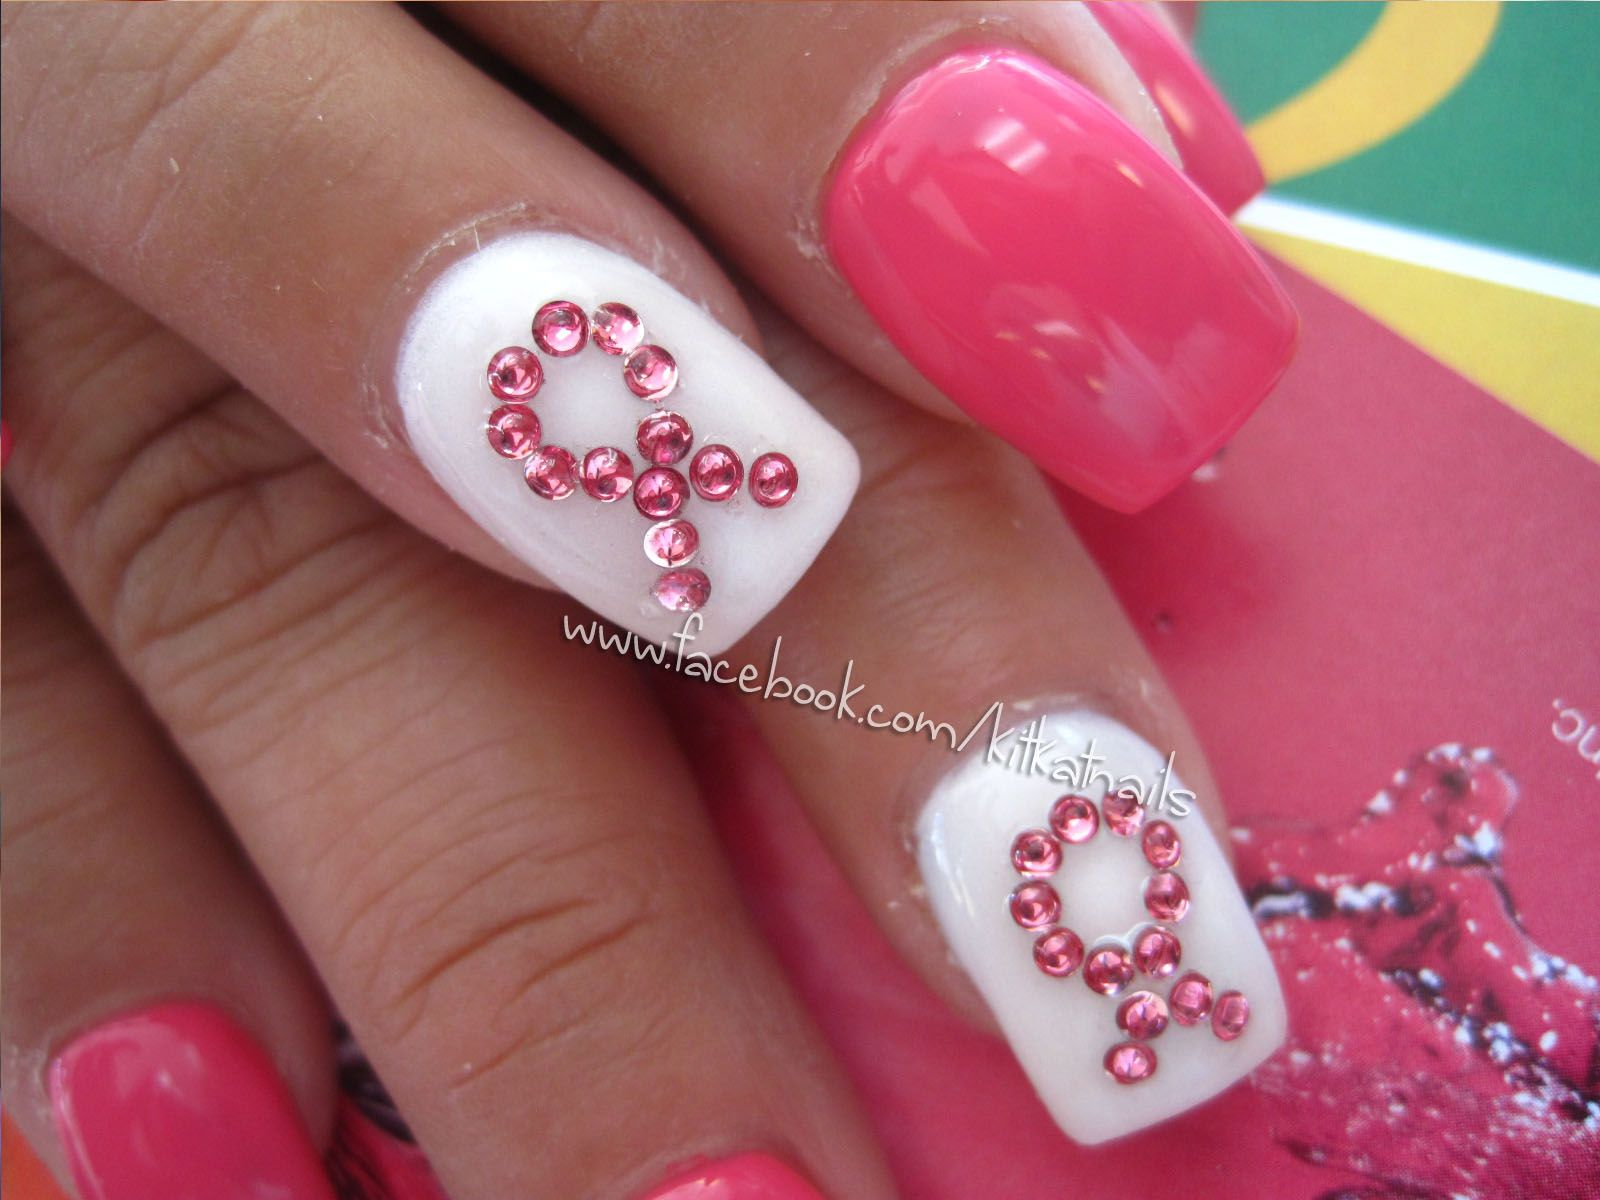 Pin by Vicky Watson on Breast Cancer Awareness Nail Design | Pinterest